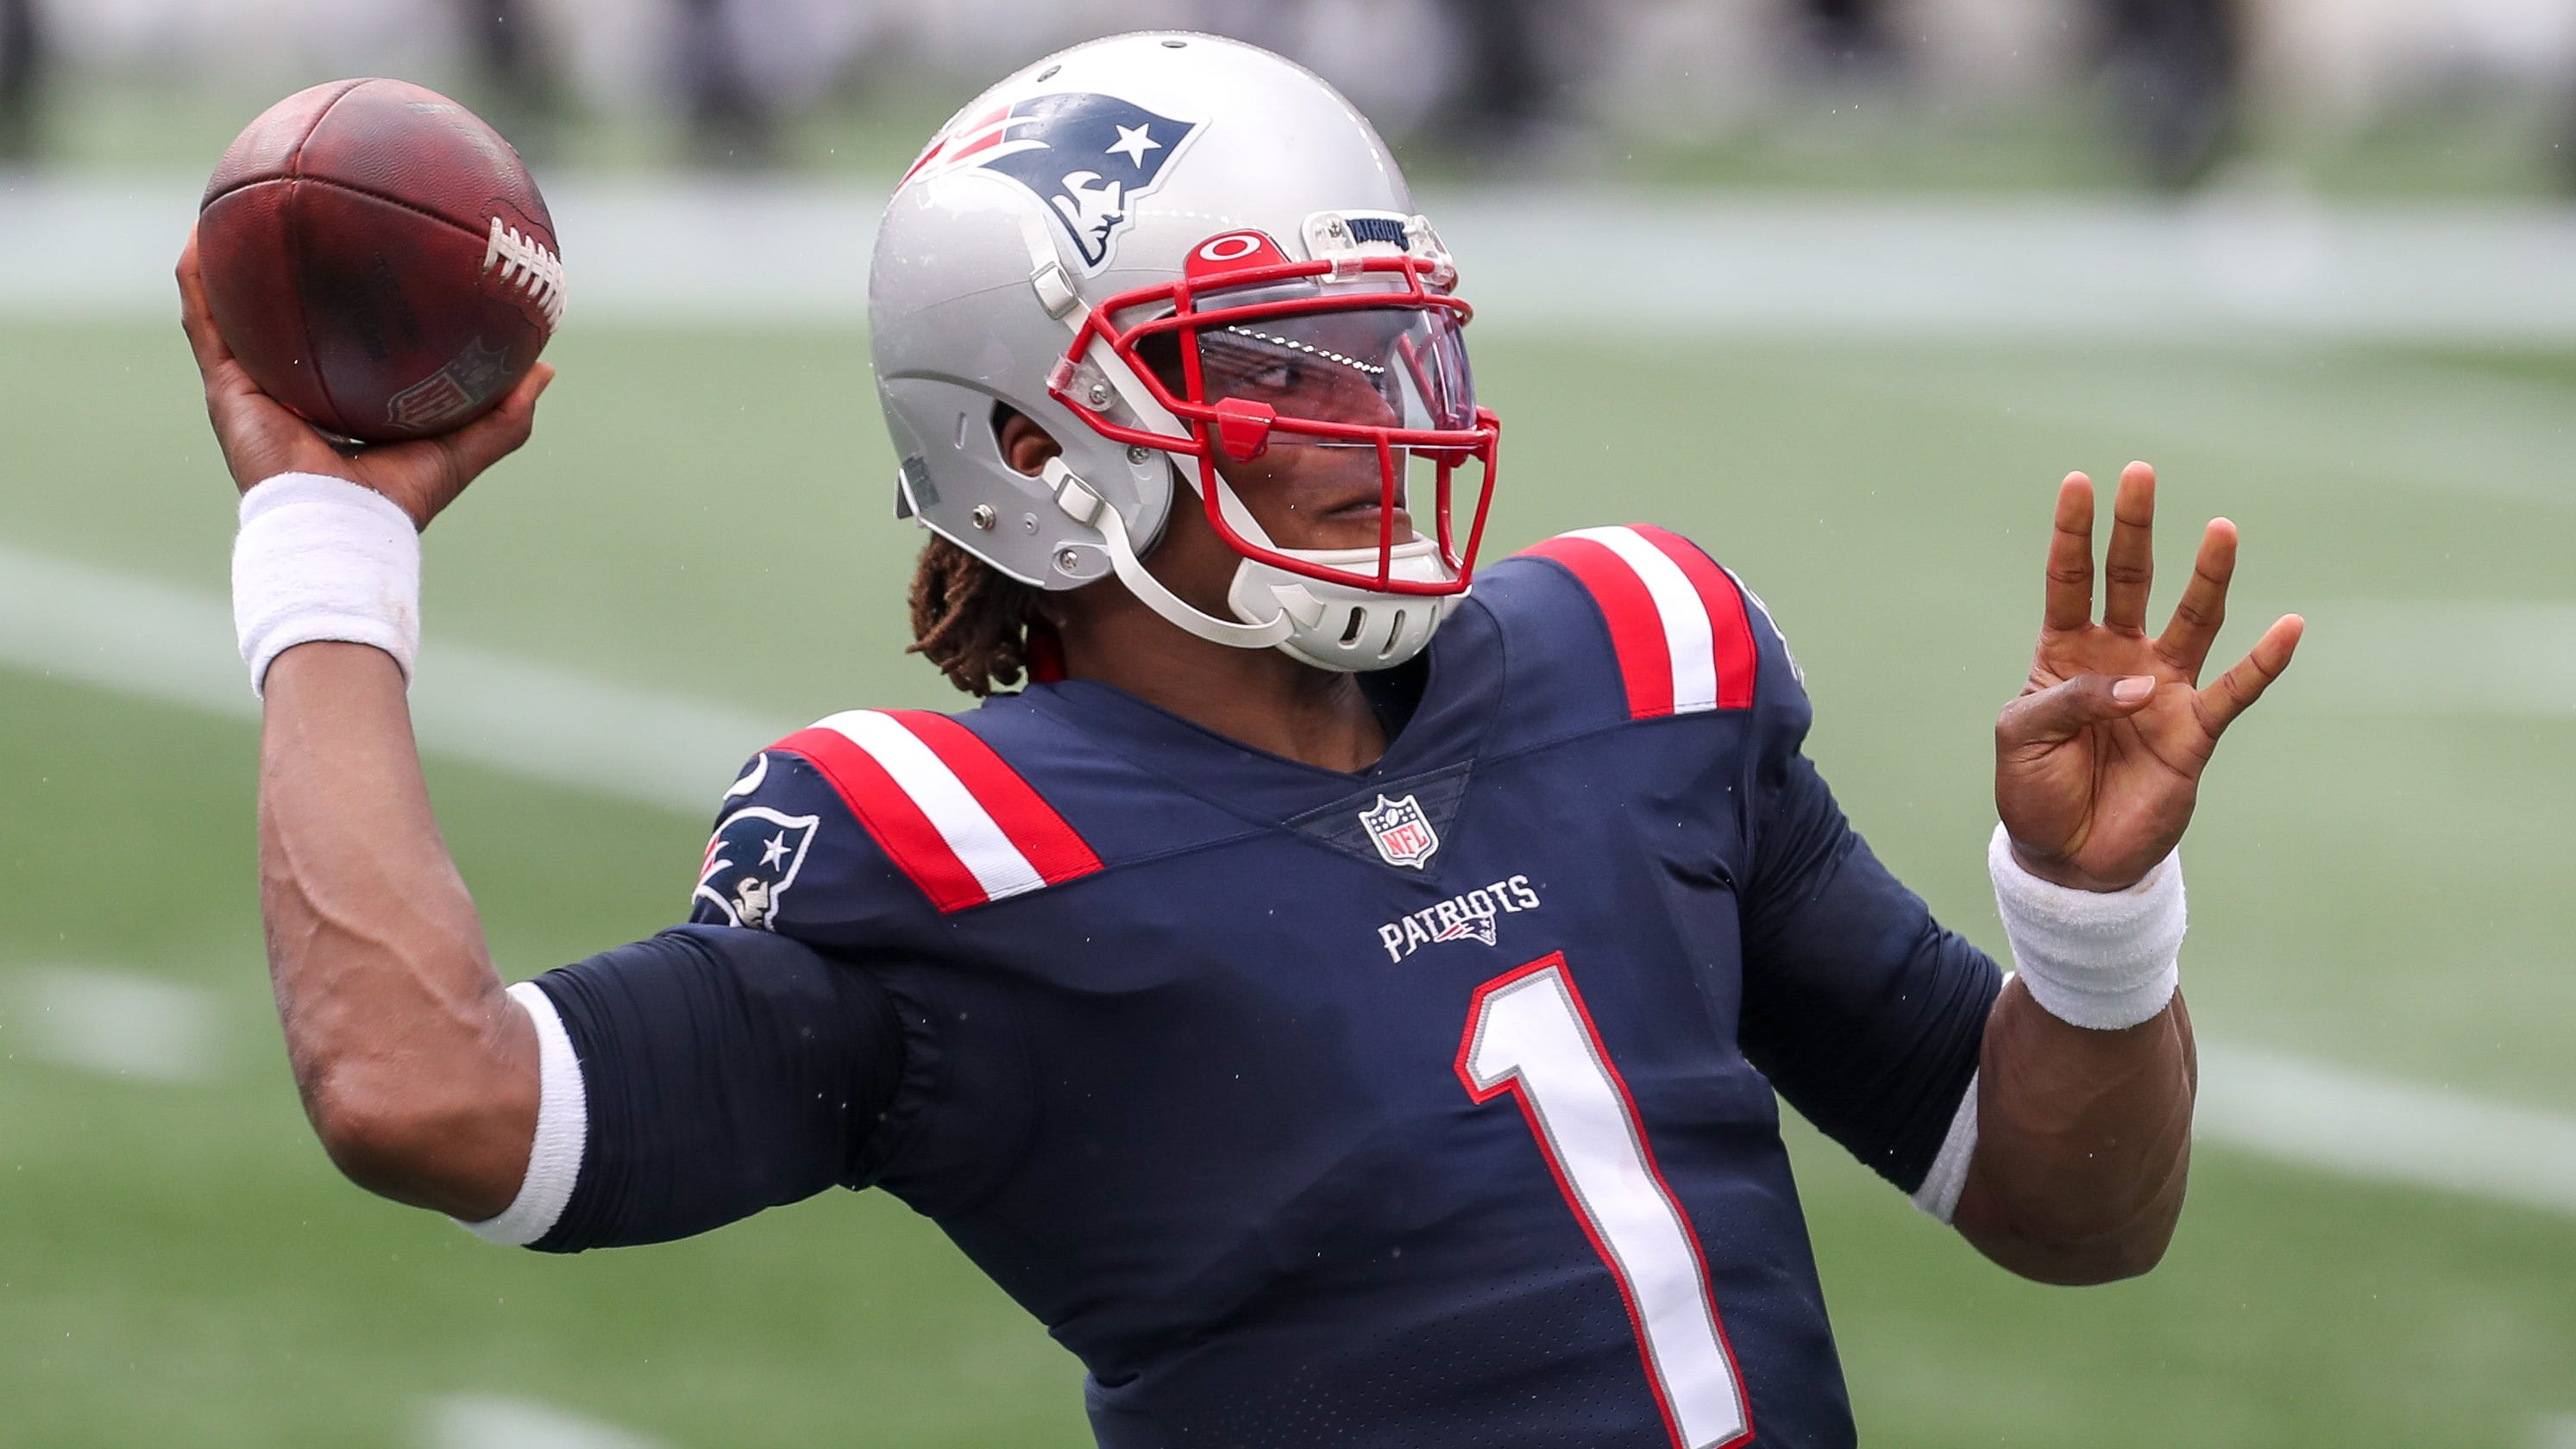 Report: Patriots QB Cam Newton tests positive for COVID-19, placed on reserve list